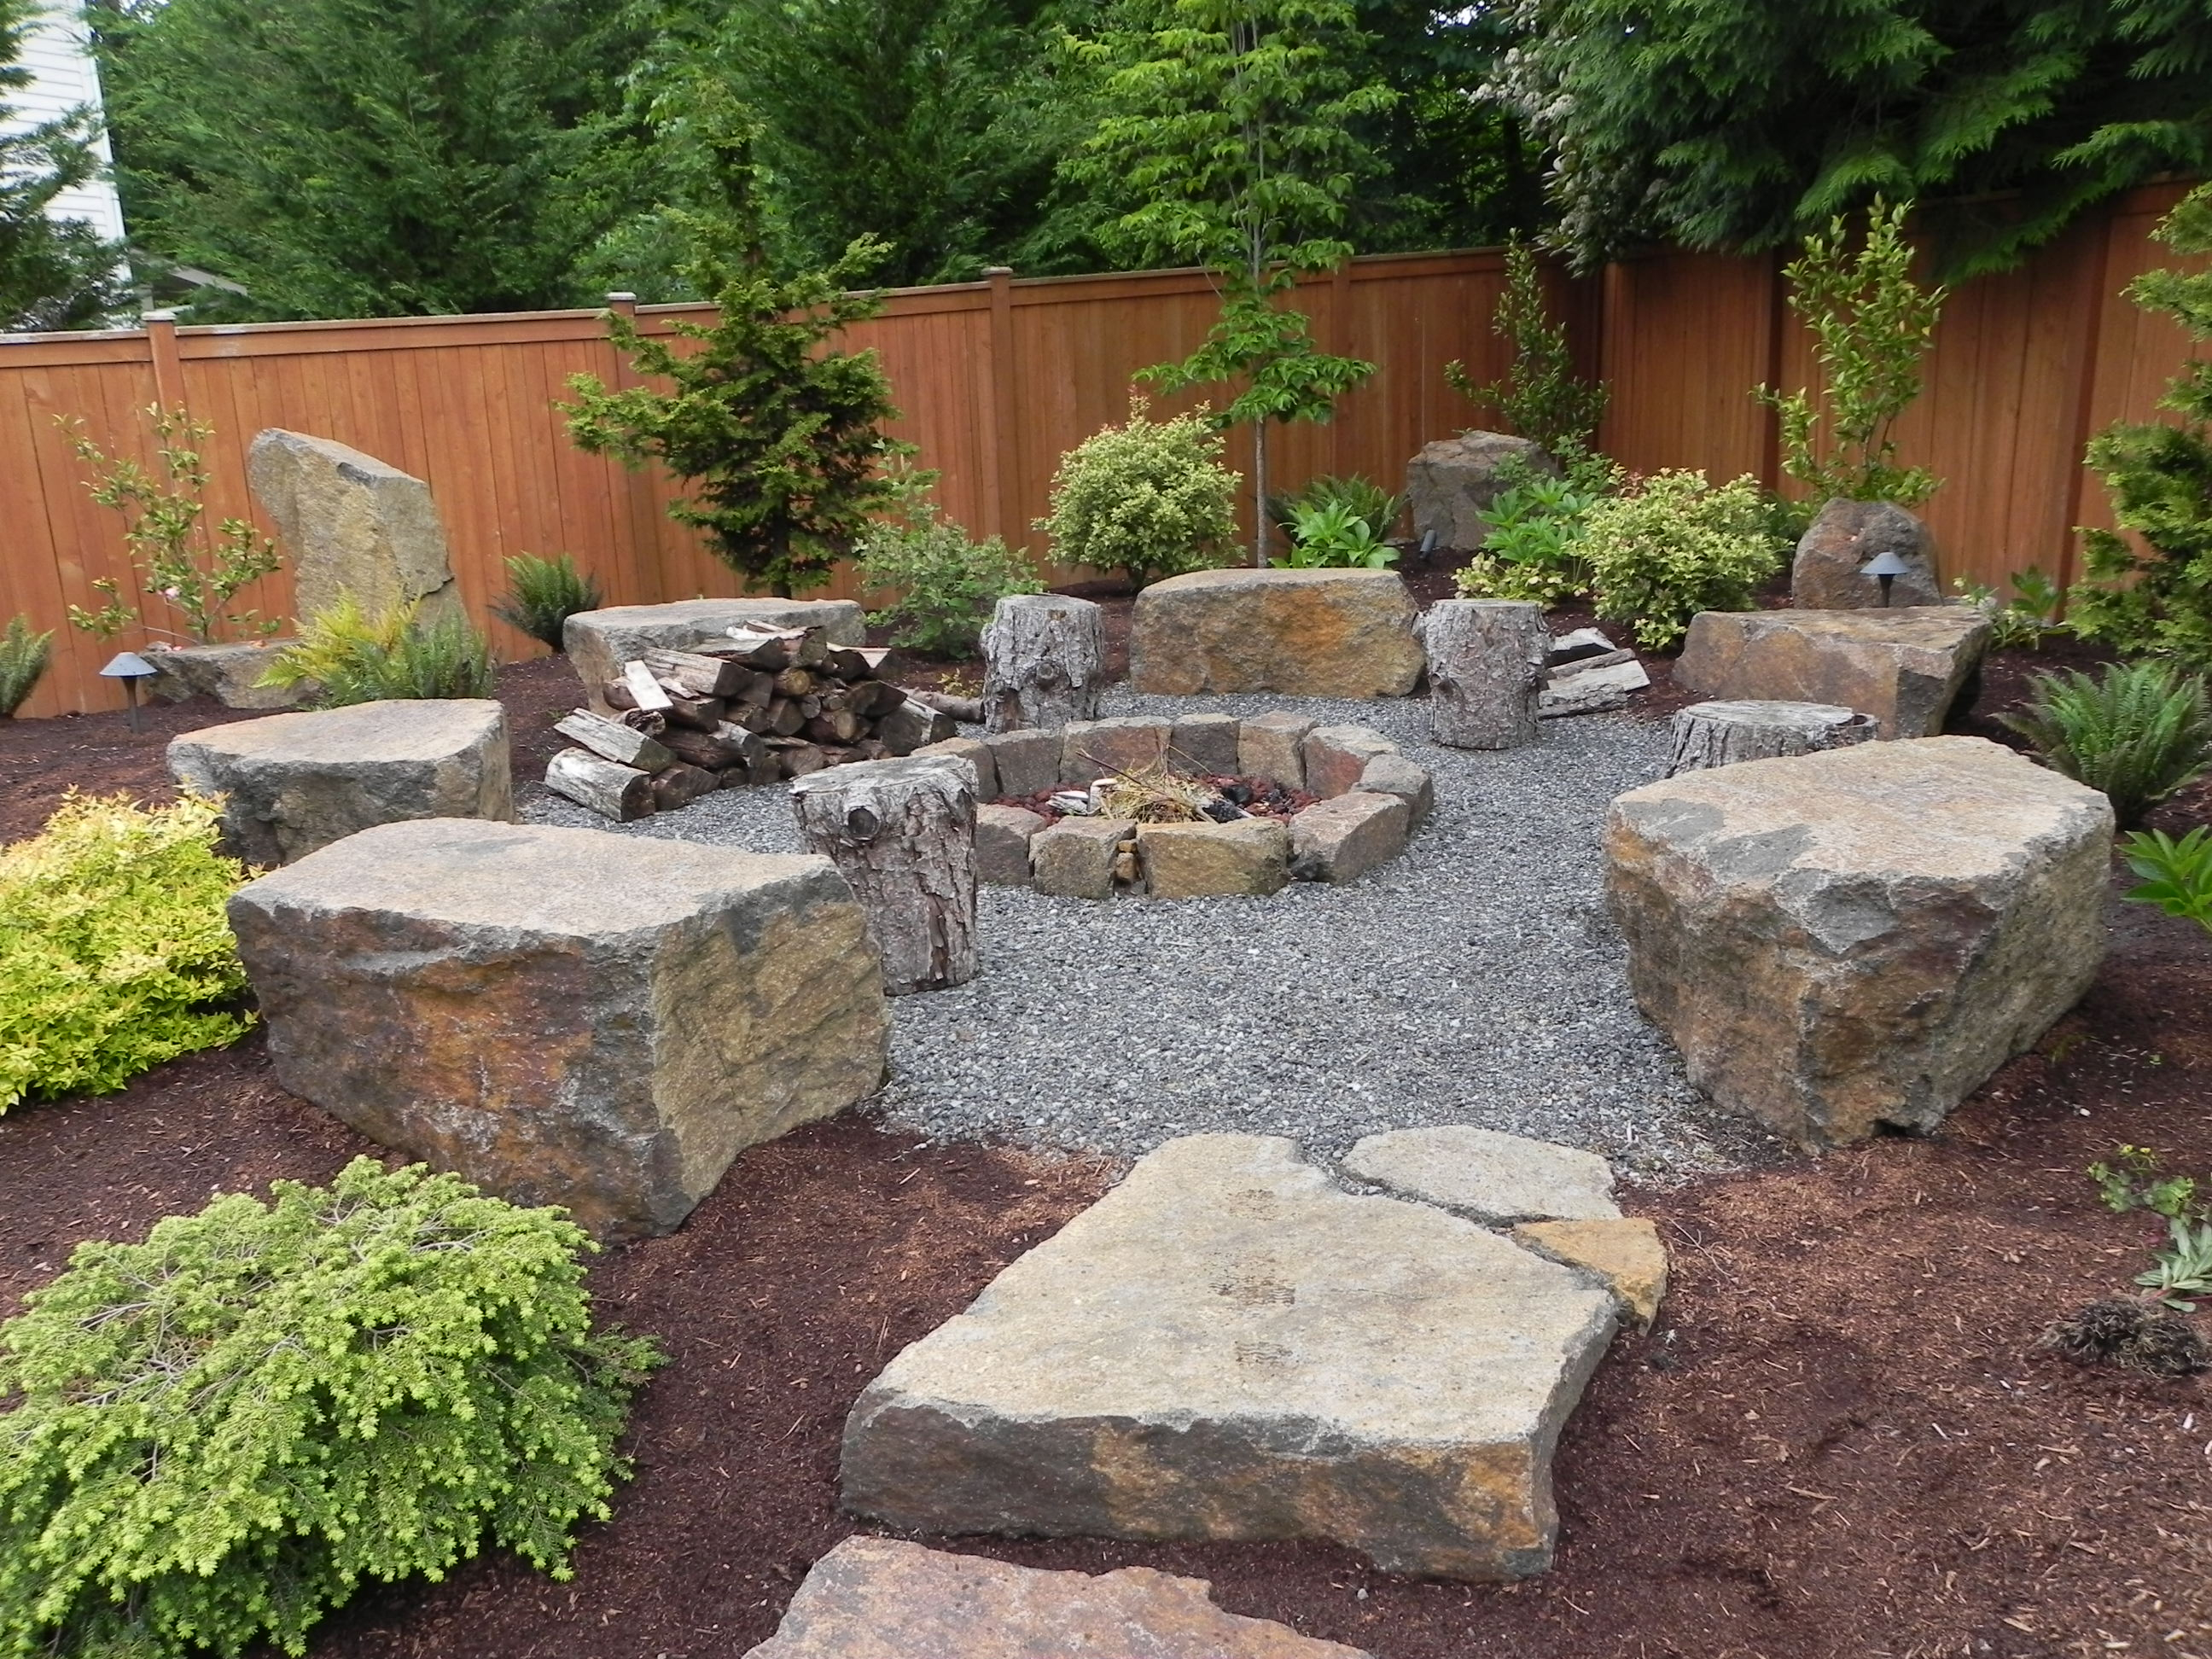 In Ground Fire Pit Ideas The New Way Home Decor Fire Pit Ideas inside 11 Awesome Designs of How to Improve Backyard Ground Ideas